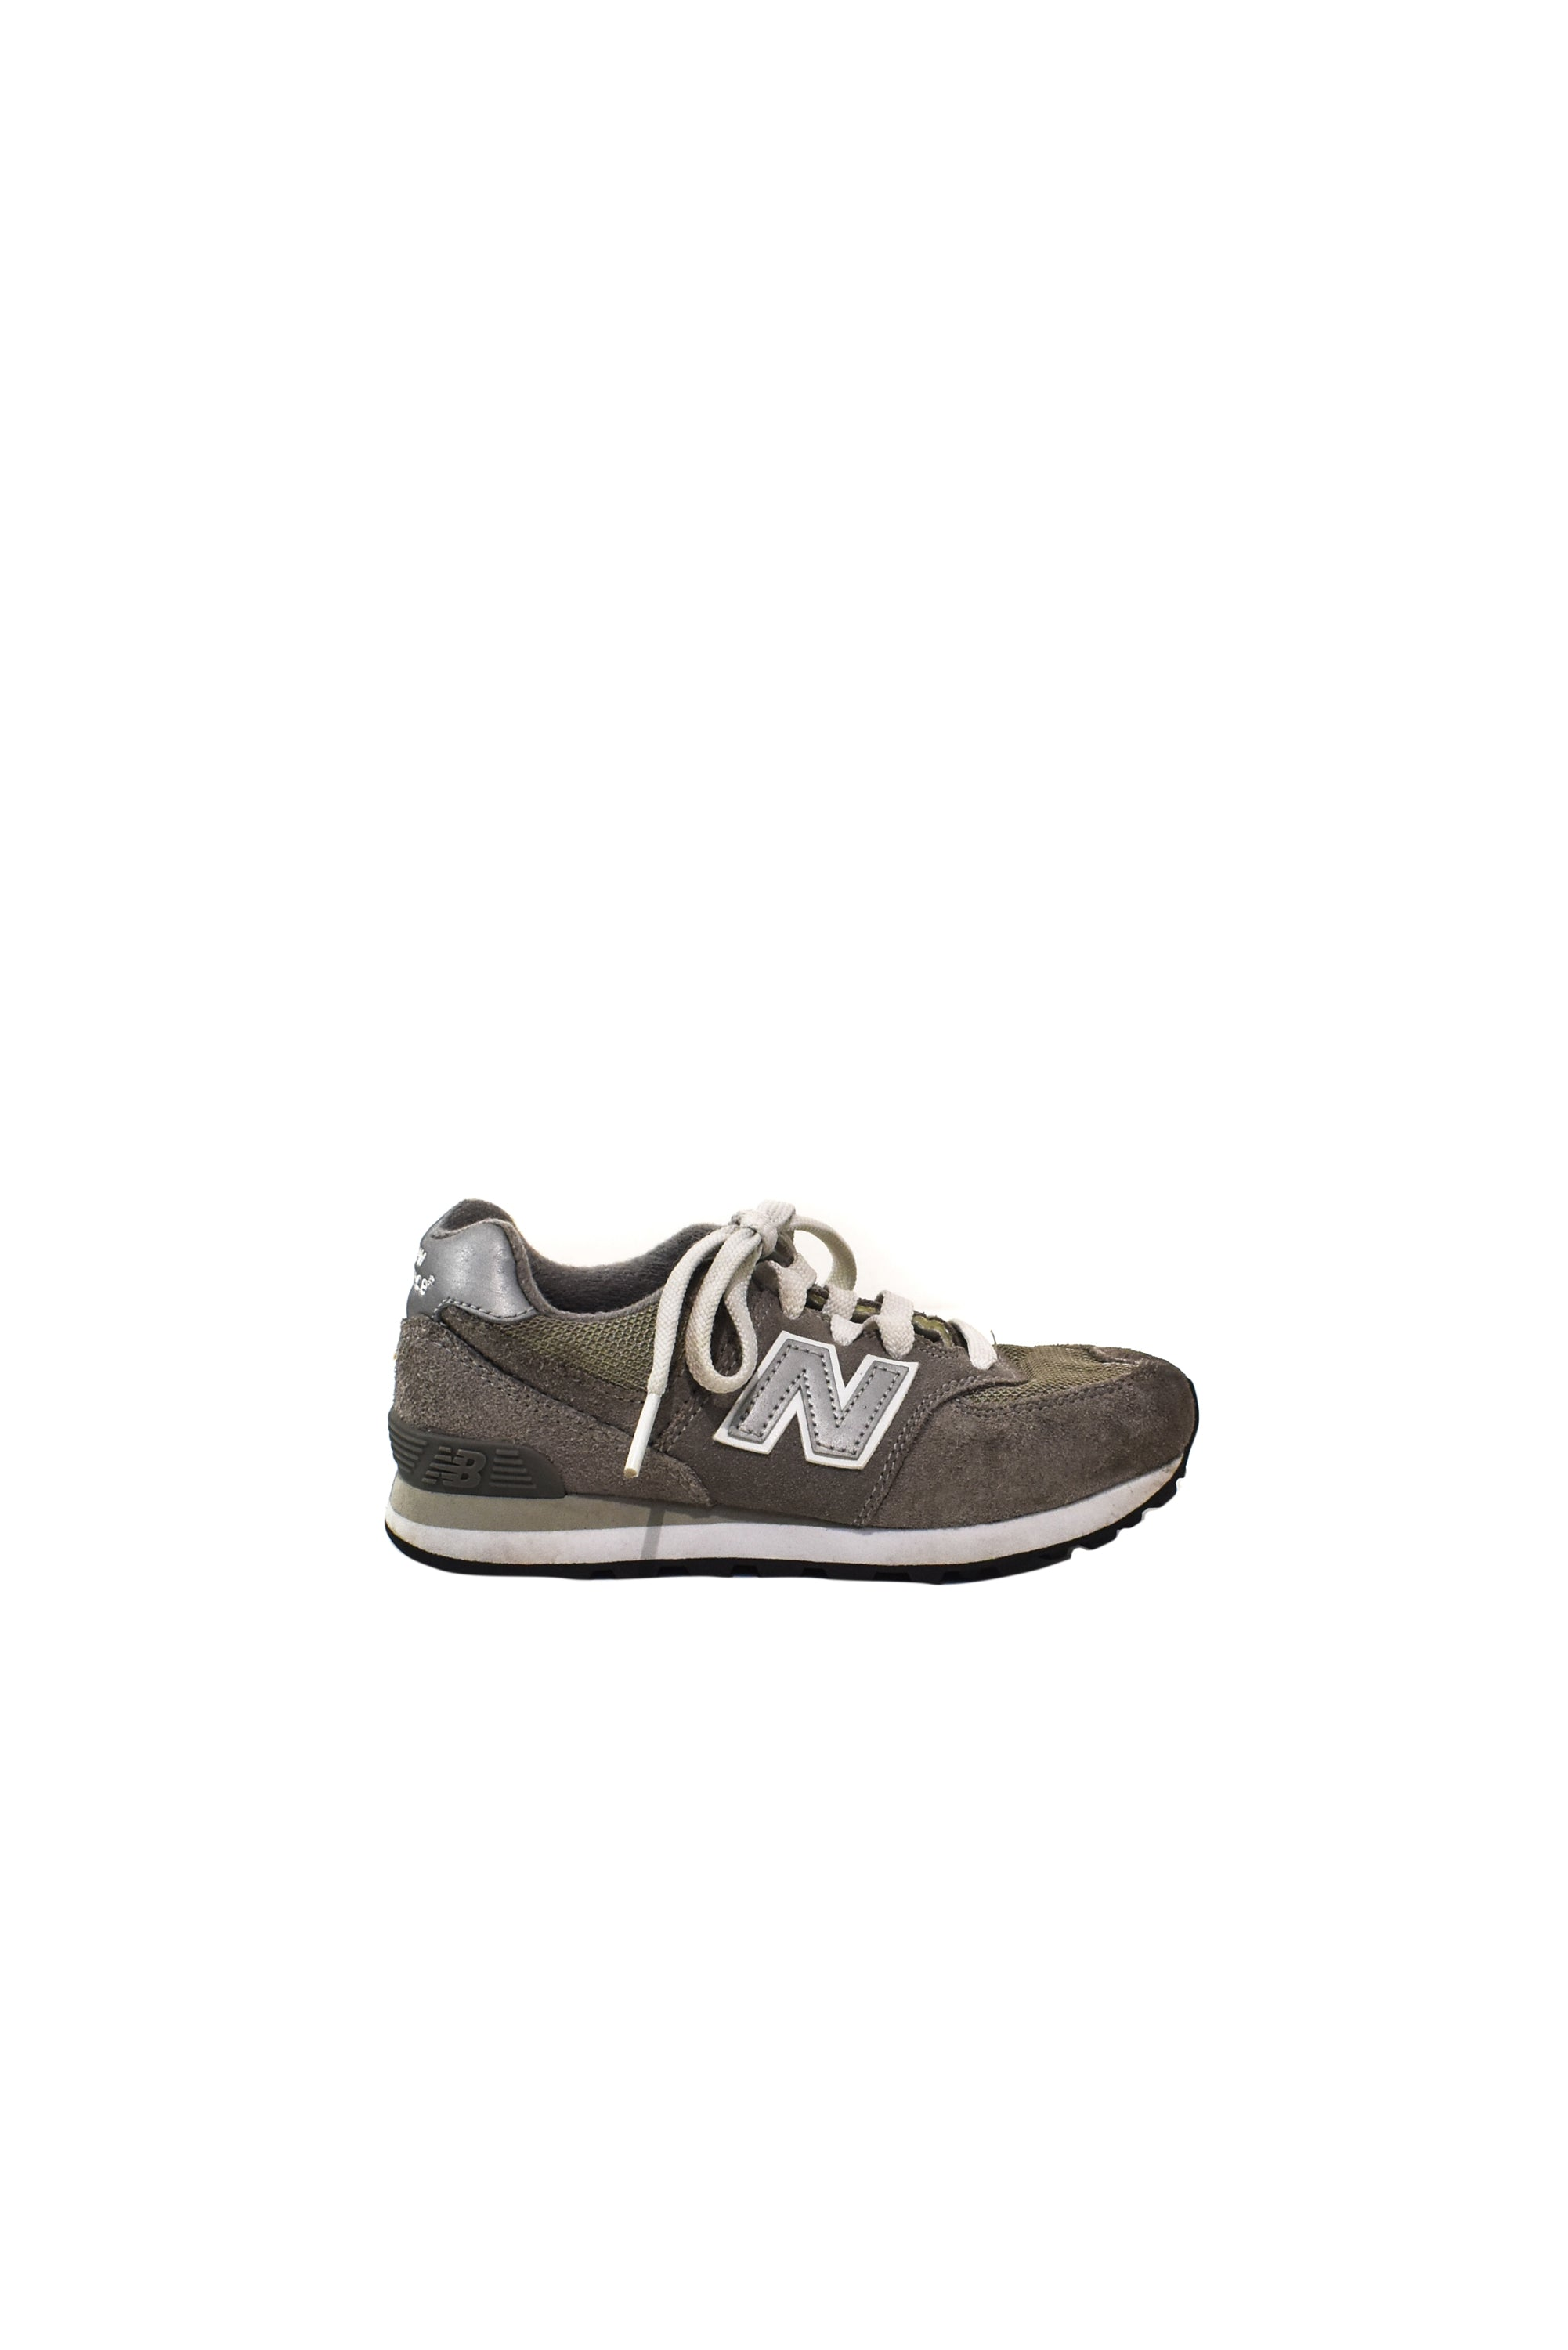 10027959 New Balance~Shoes 6T (US 11,5 UK 11 EU 29) at Retykle